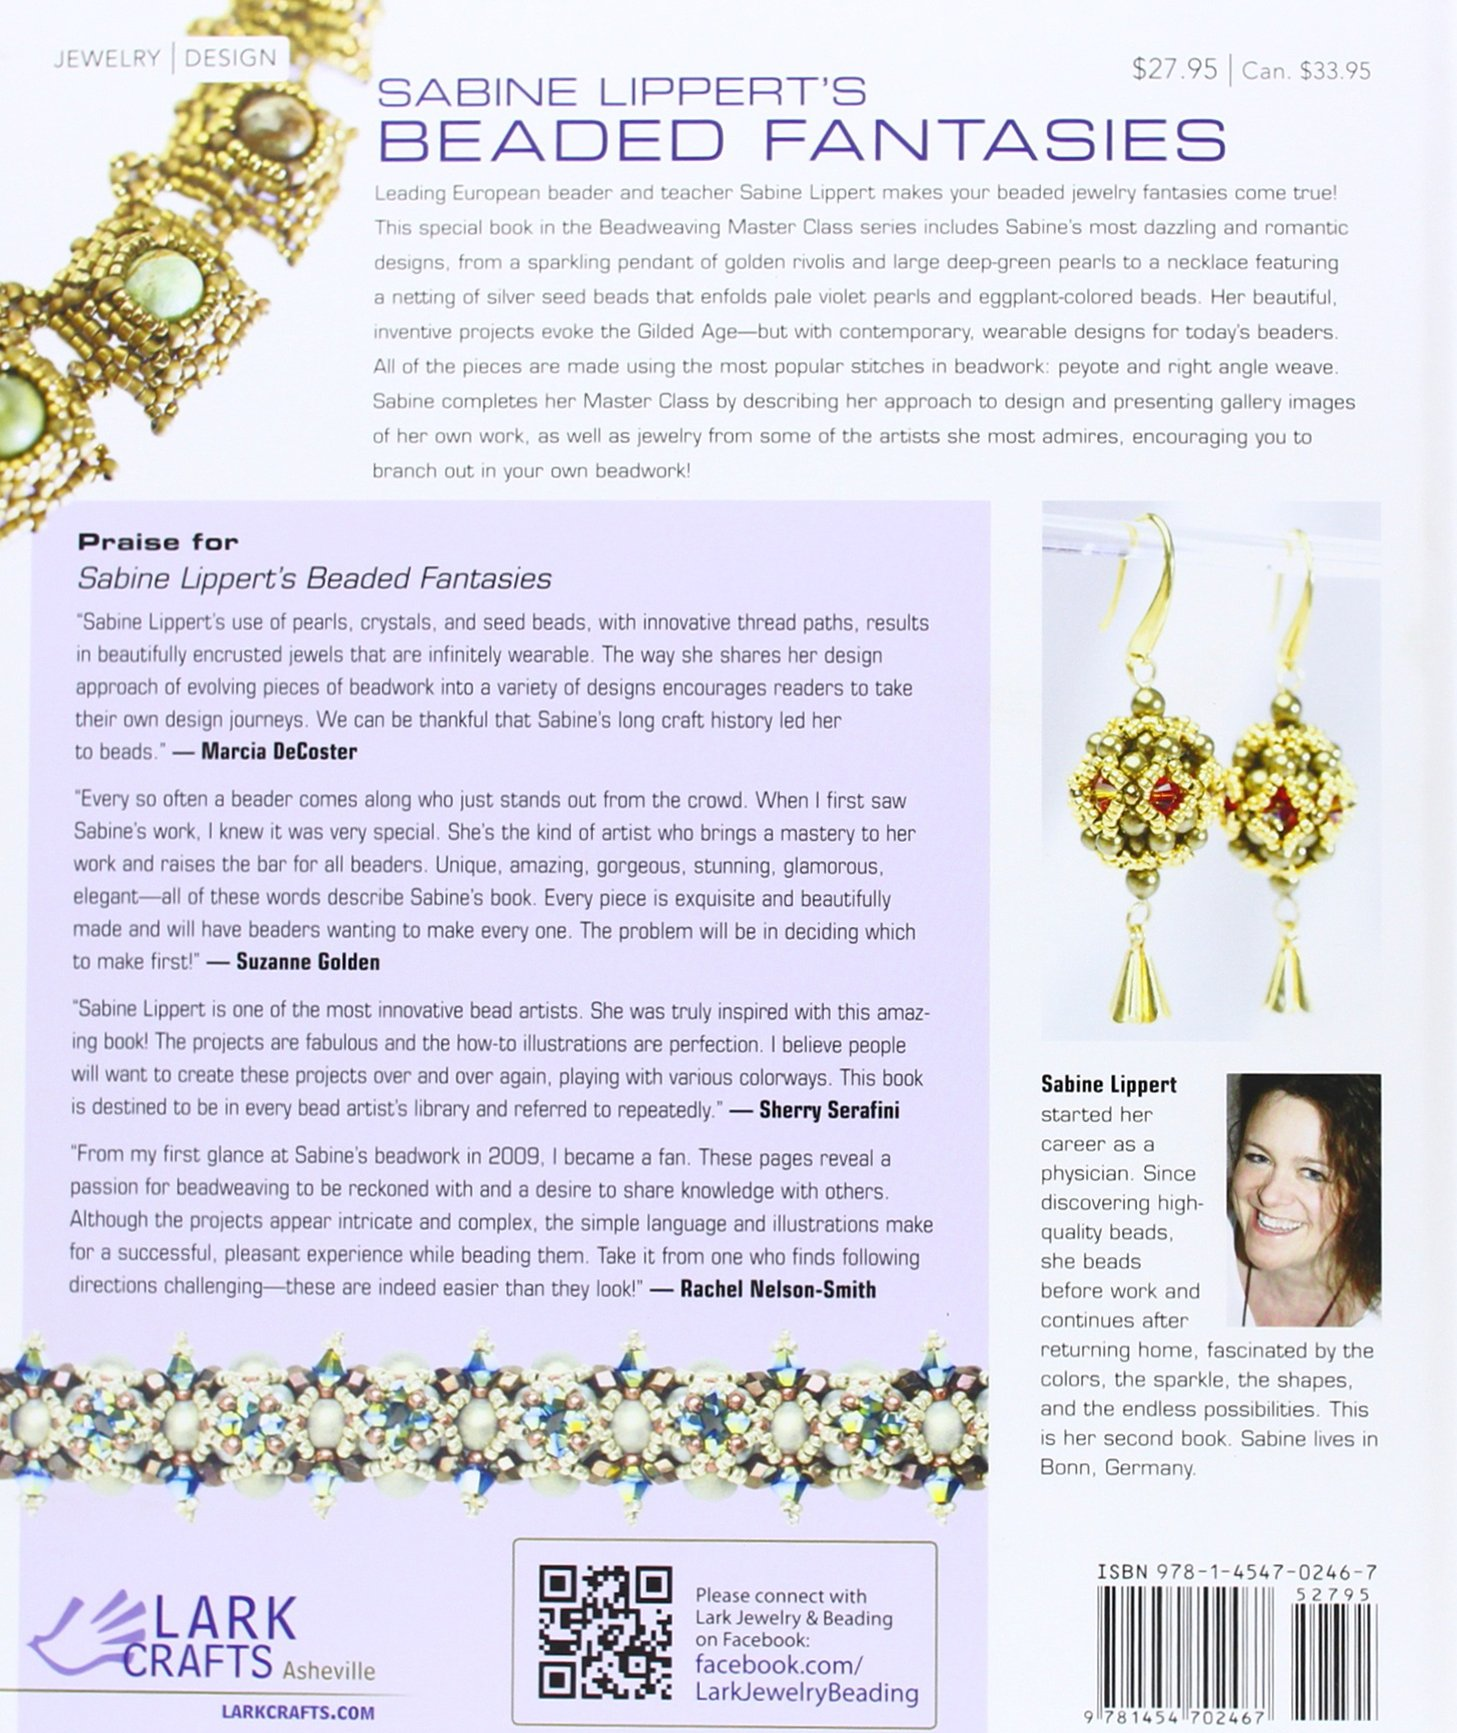 Sabine Lippert's Beaded Fantasies: 30 Romantic Jewelry Projects (Beadweaving Master Class Series) by Lark Books NC